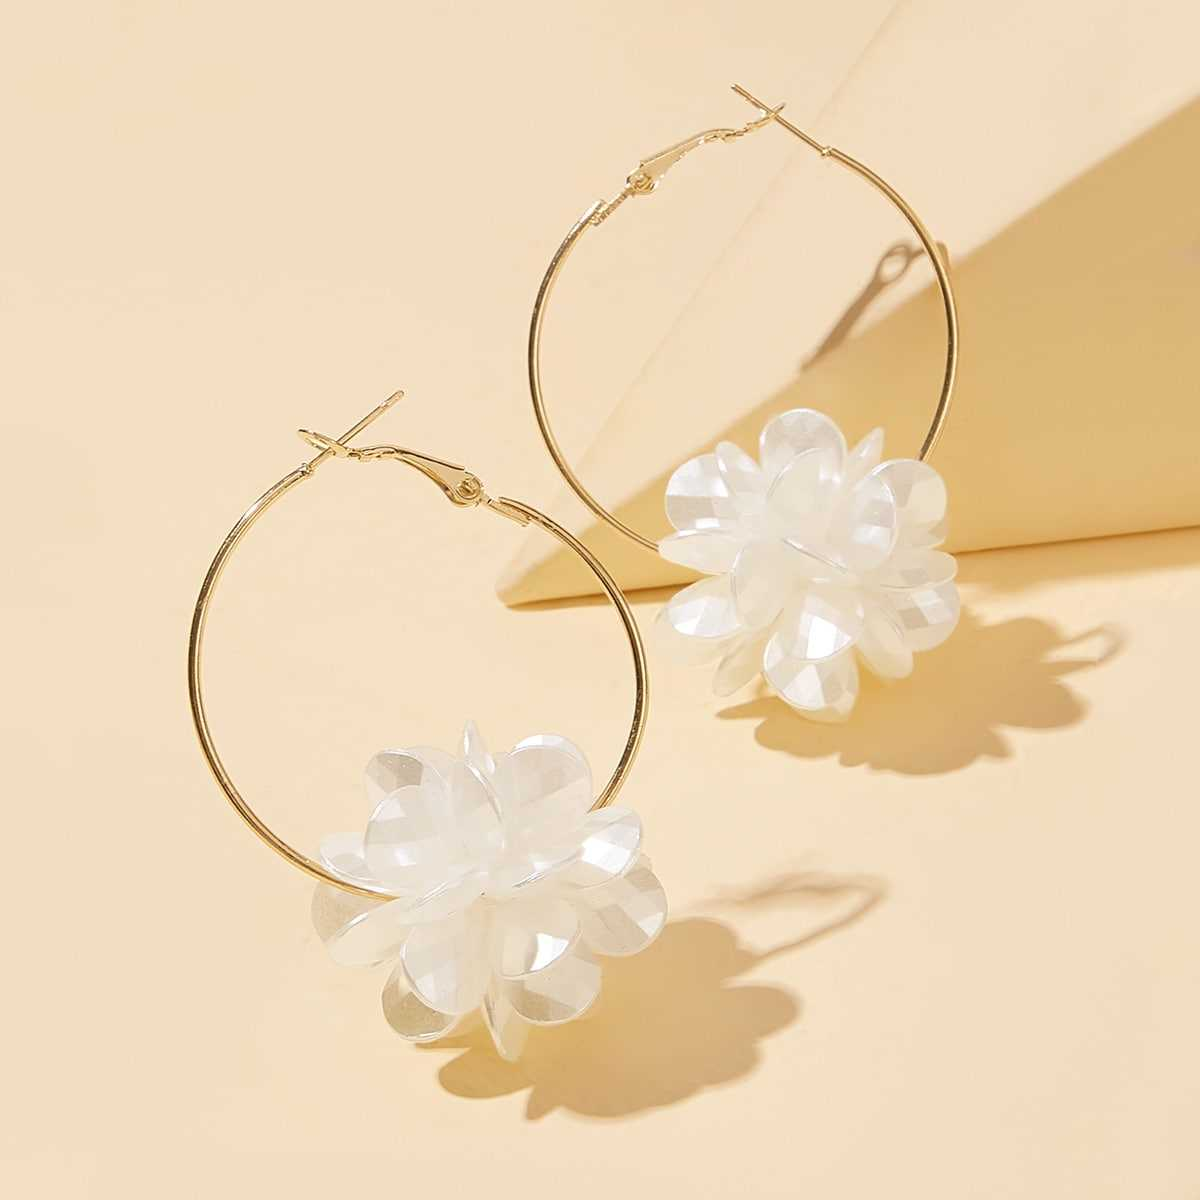 Round Decor Flower Drop Earrings 1pair in Gold by ROMWE on GOOFASH